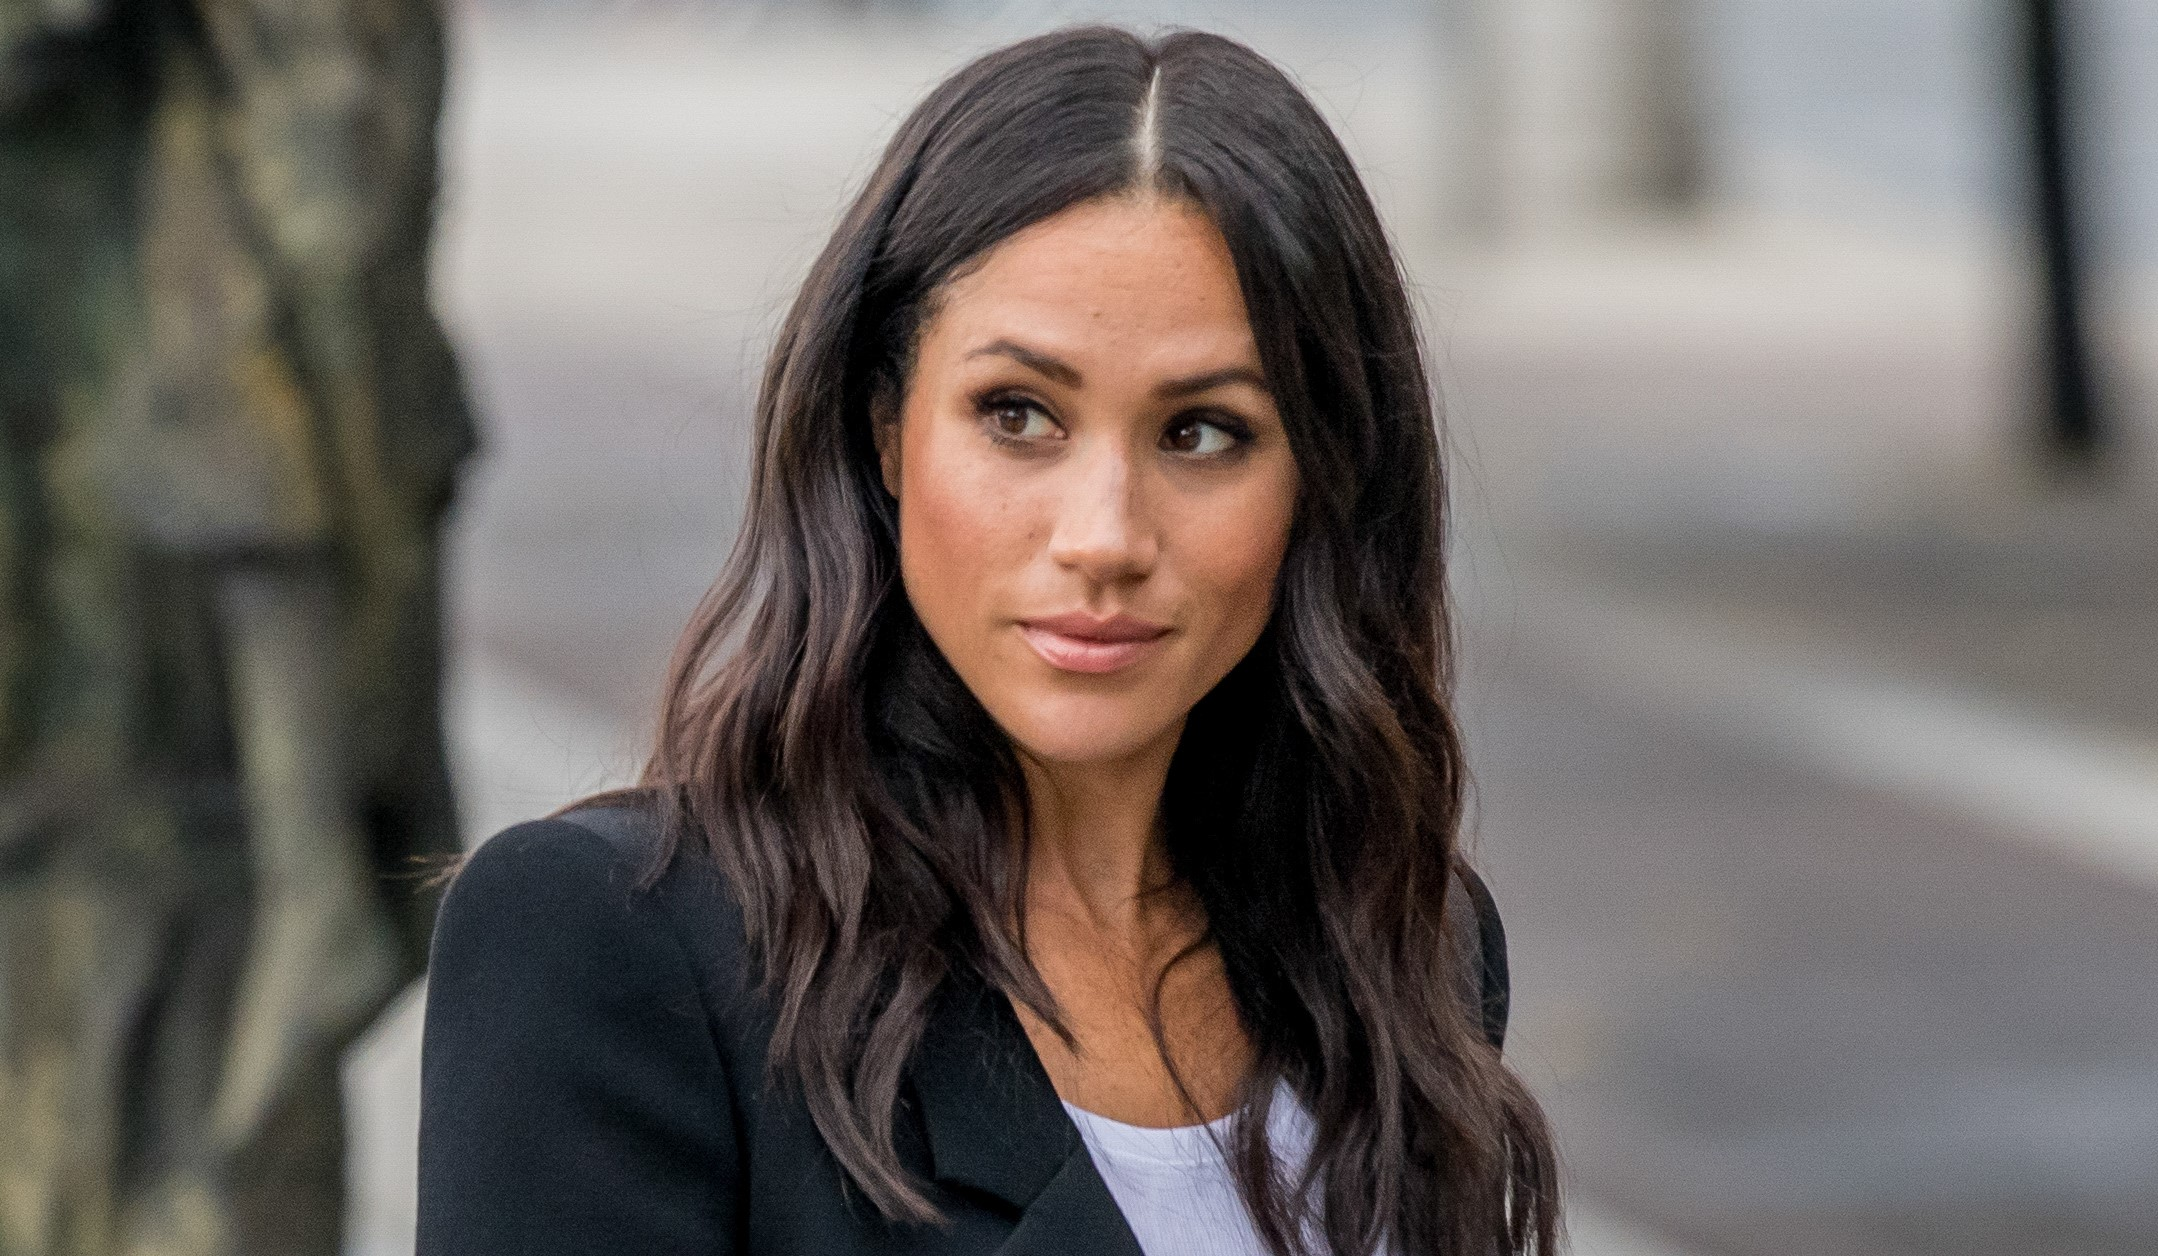 Meghan Markle 'kept a diary' - could it become an explosive memoir?